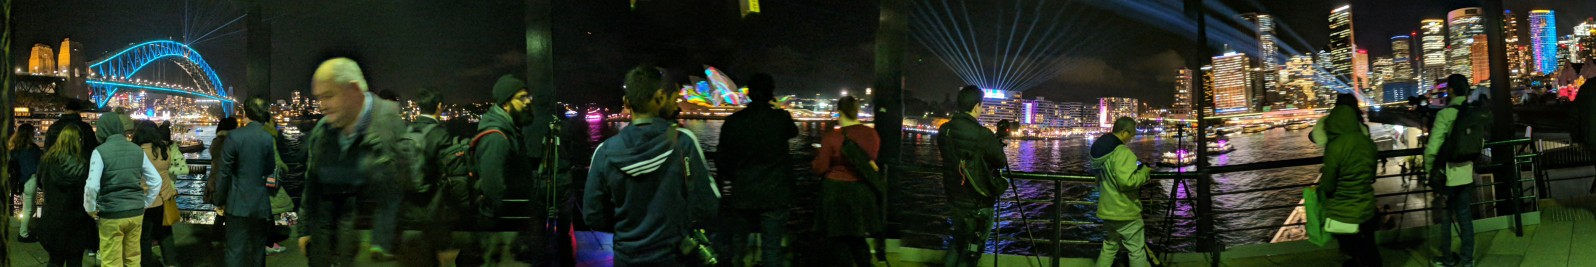 Photographic Crowd at Vivid